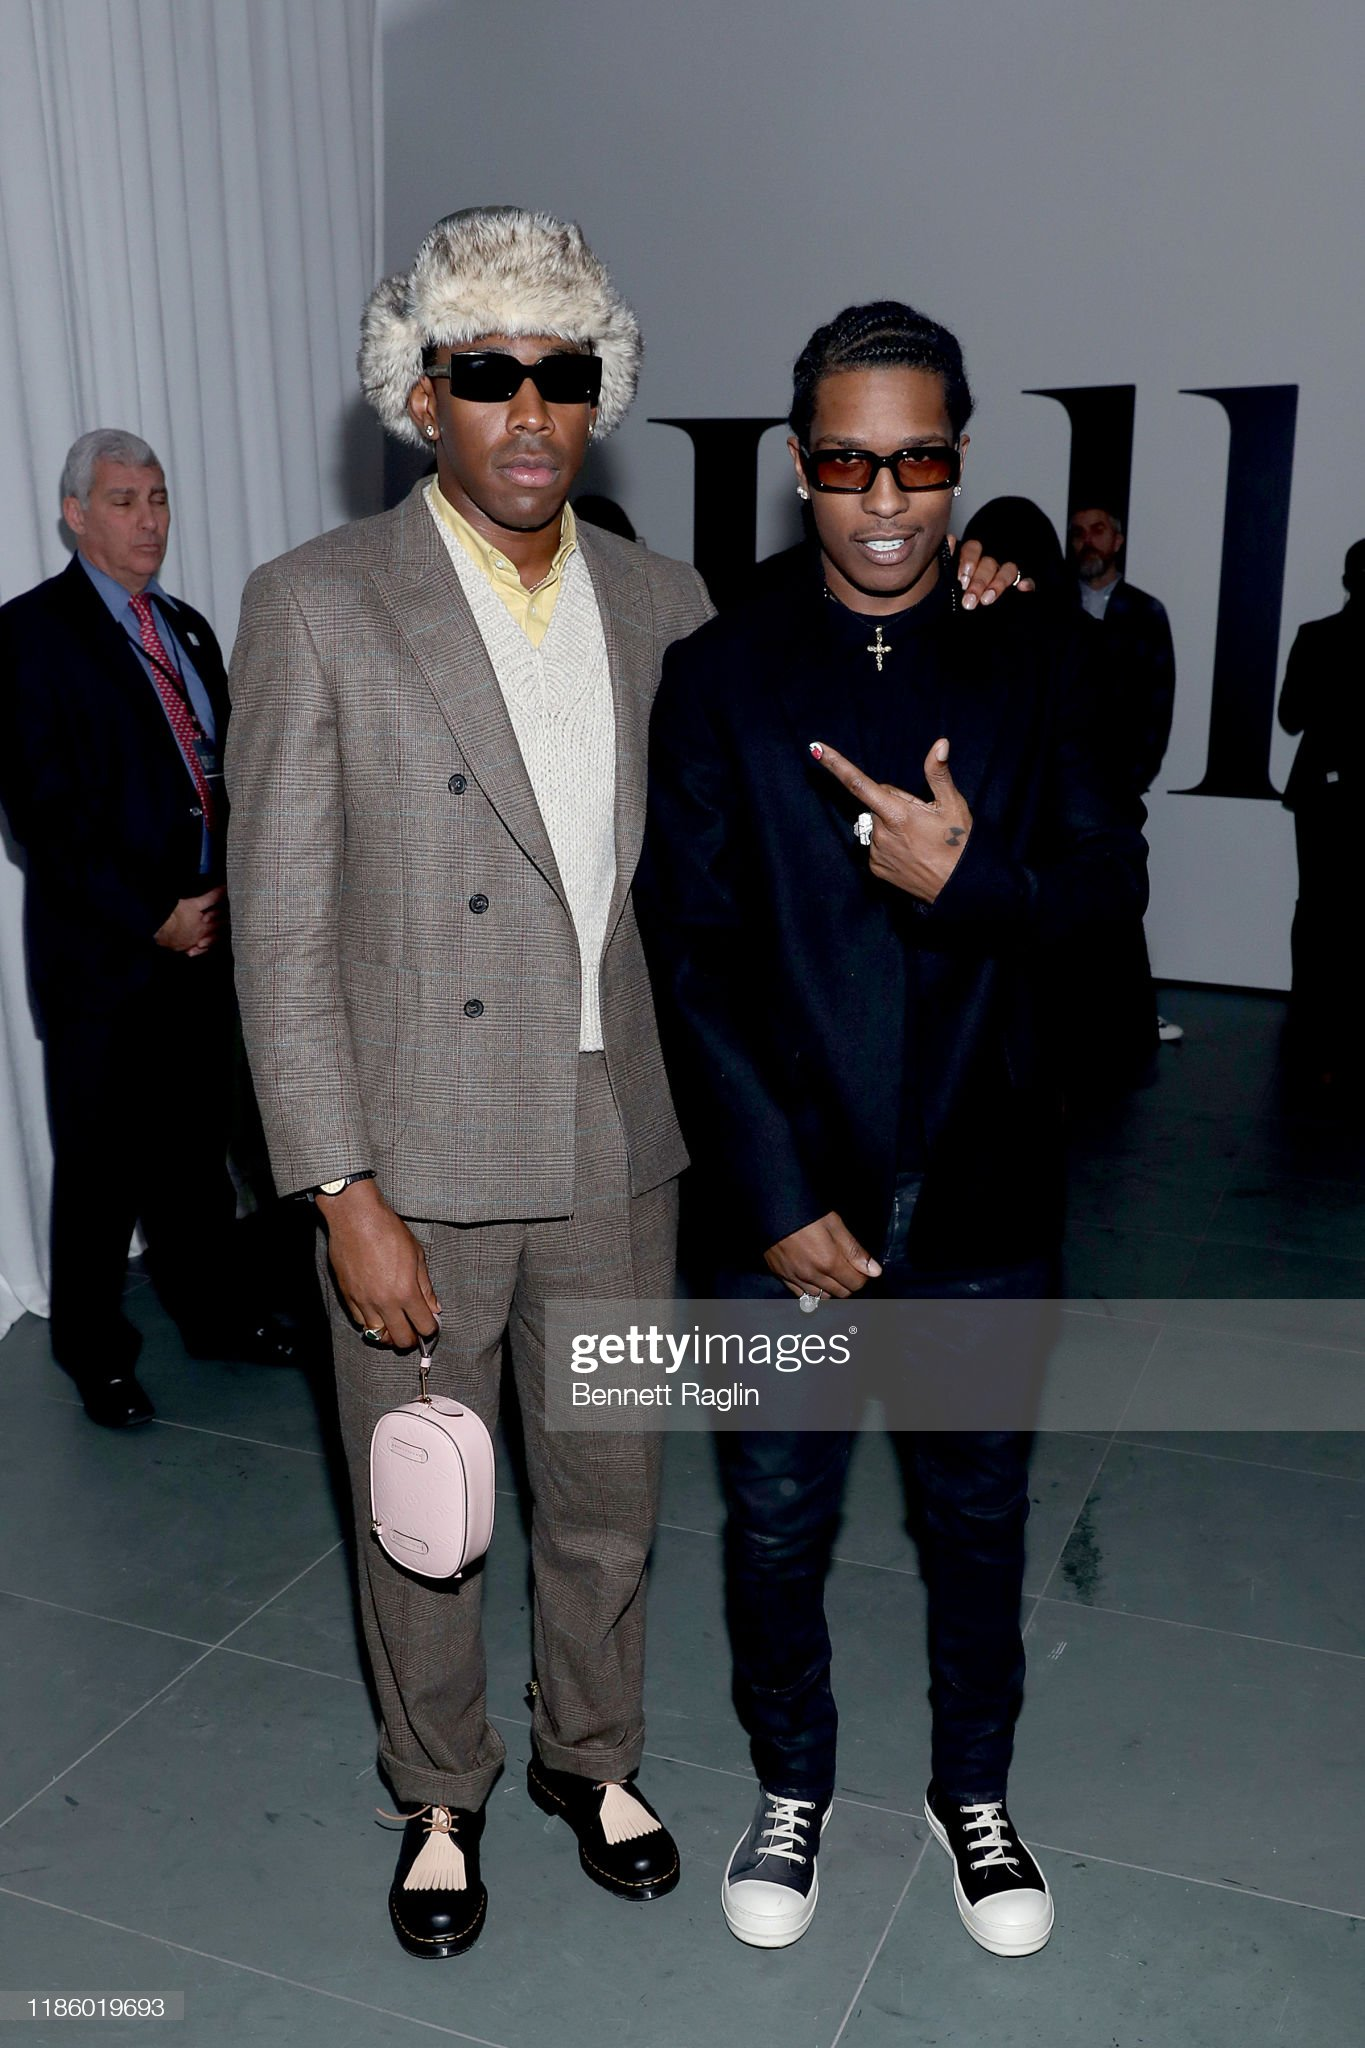 ¿Cuánto mide ASAP Rocky? - Altura - Real height Tyler-the-creator-and-aap-rocky-attend-the-wsj-magazine-2019-awards-picture-id1186019693?s=2048x2048